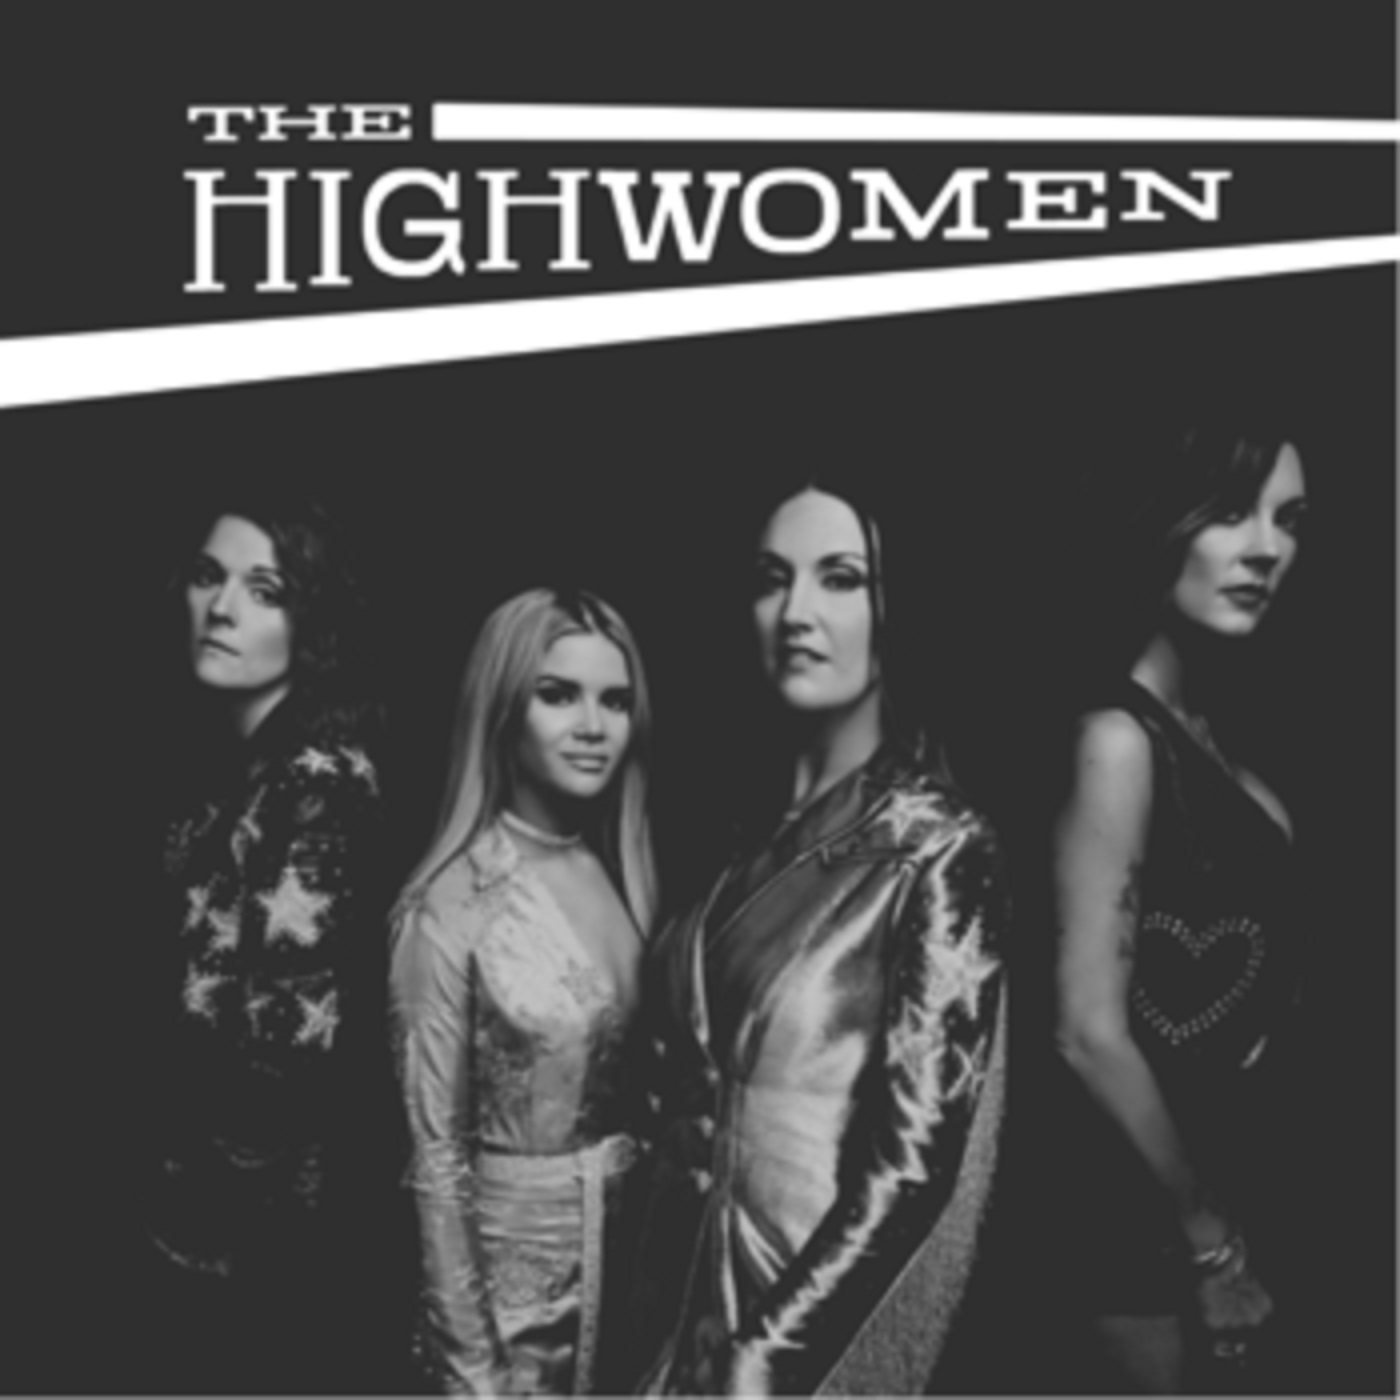 The Highwomen's debut album out today